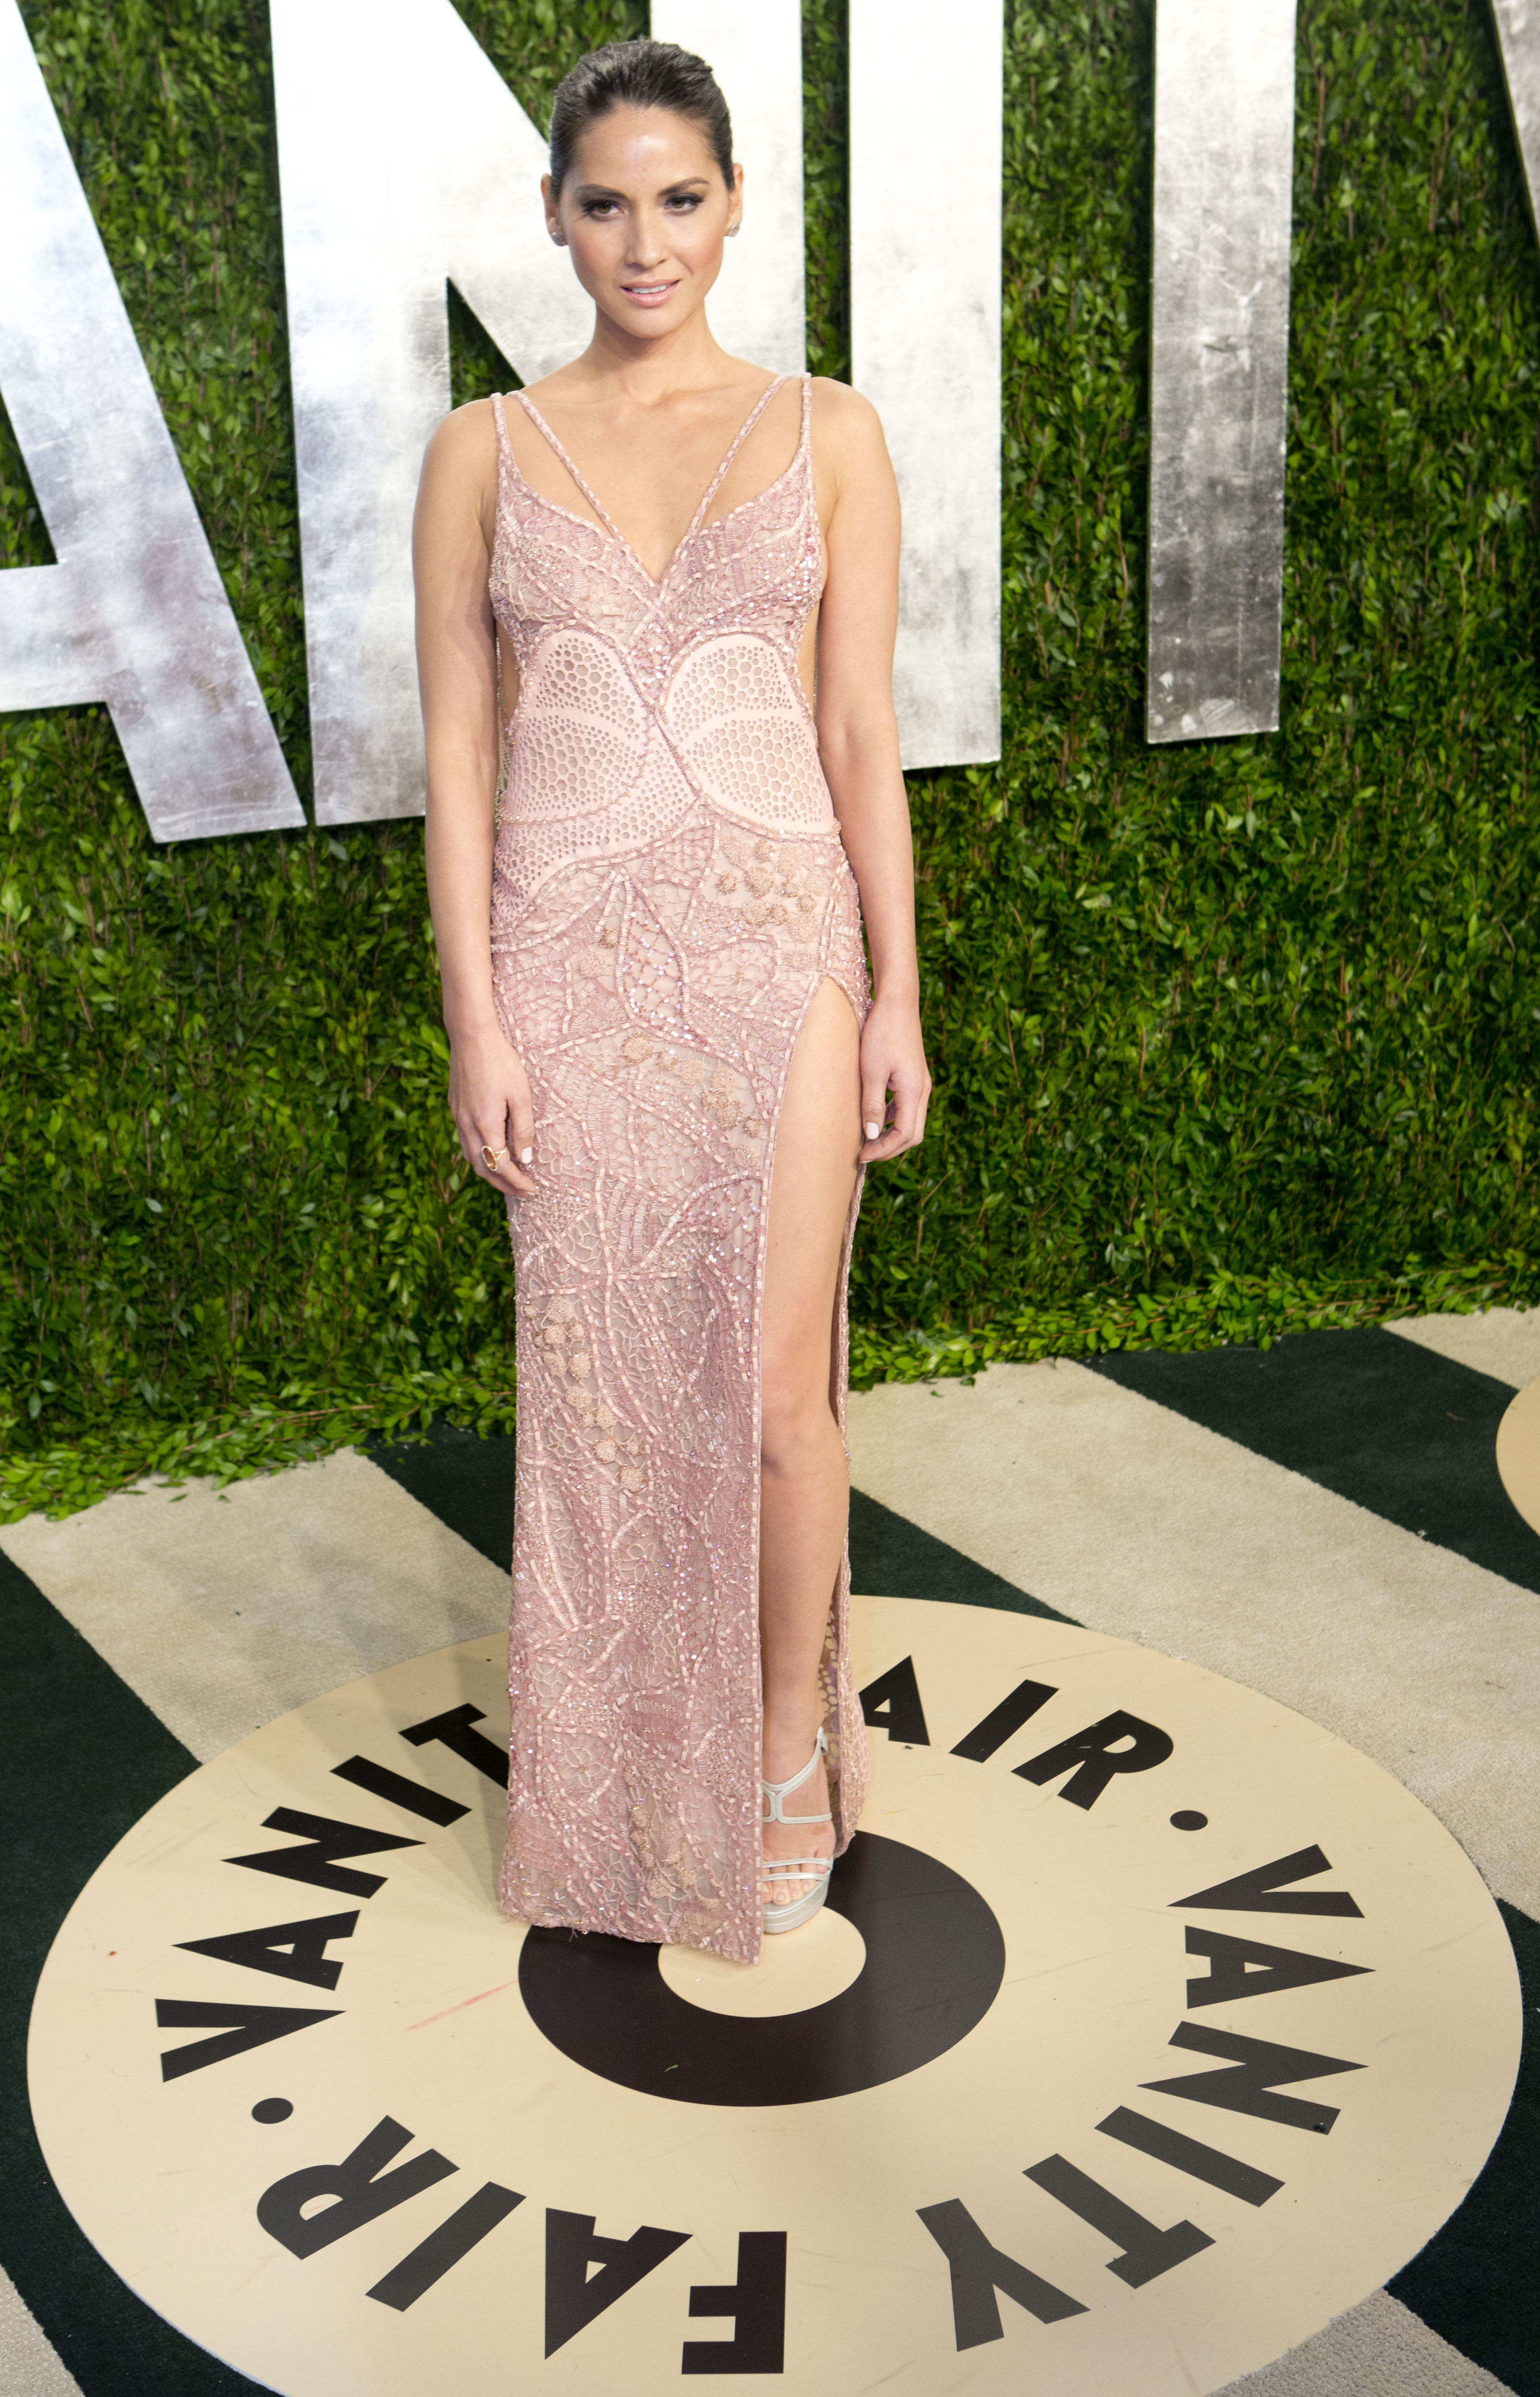 Olivia Munn arrived at the Vanity Fair Oscar party.